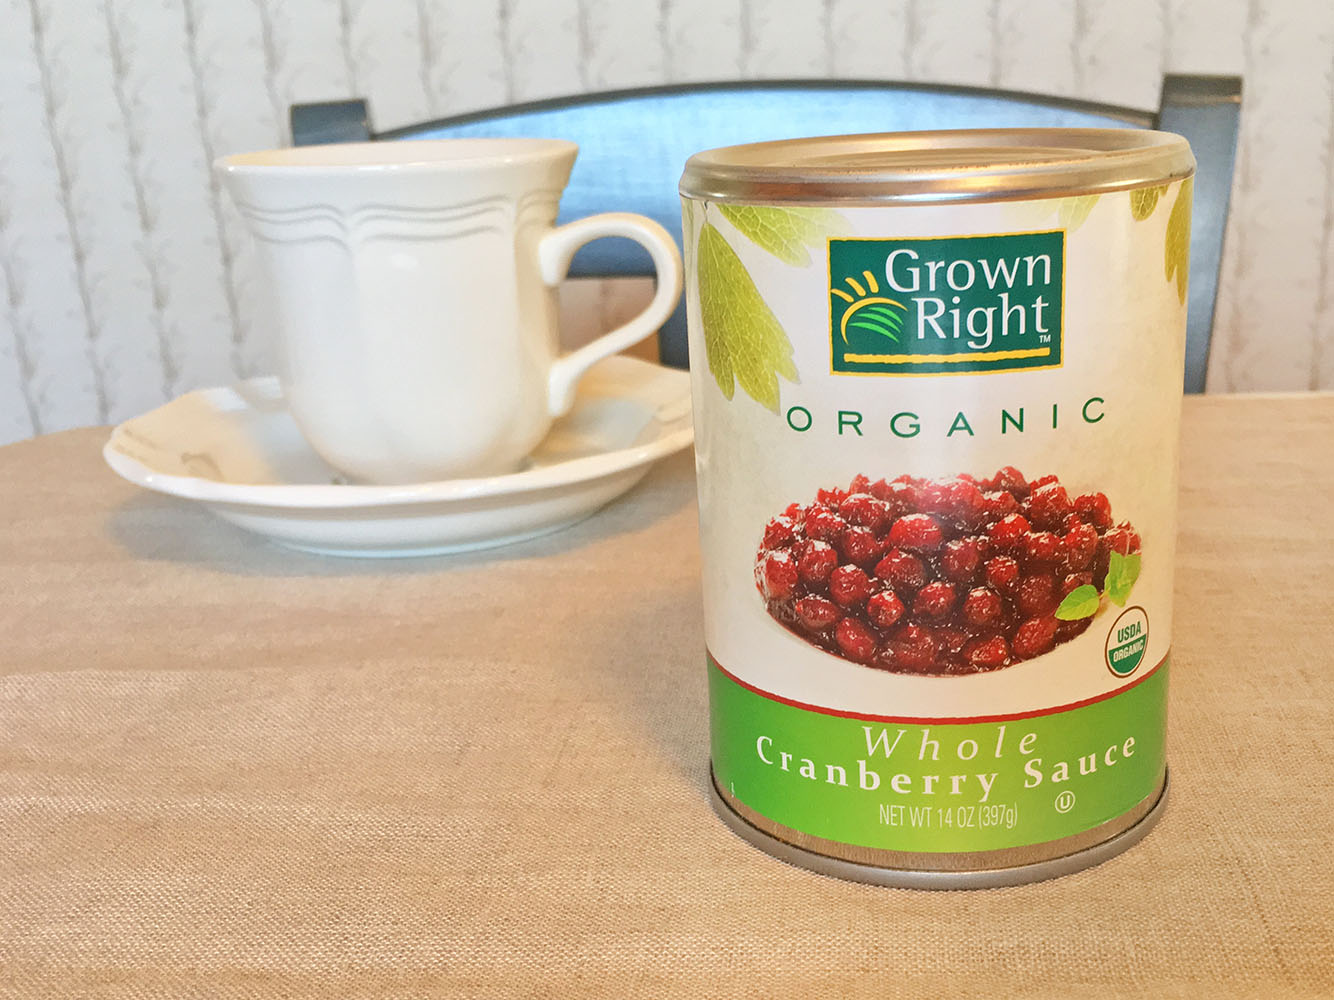 Grown Right Organic Cranberry Sauce